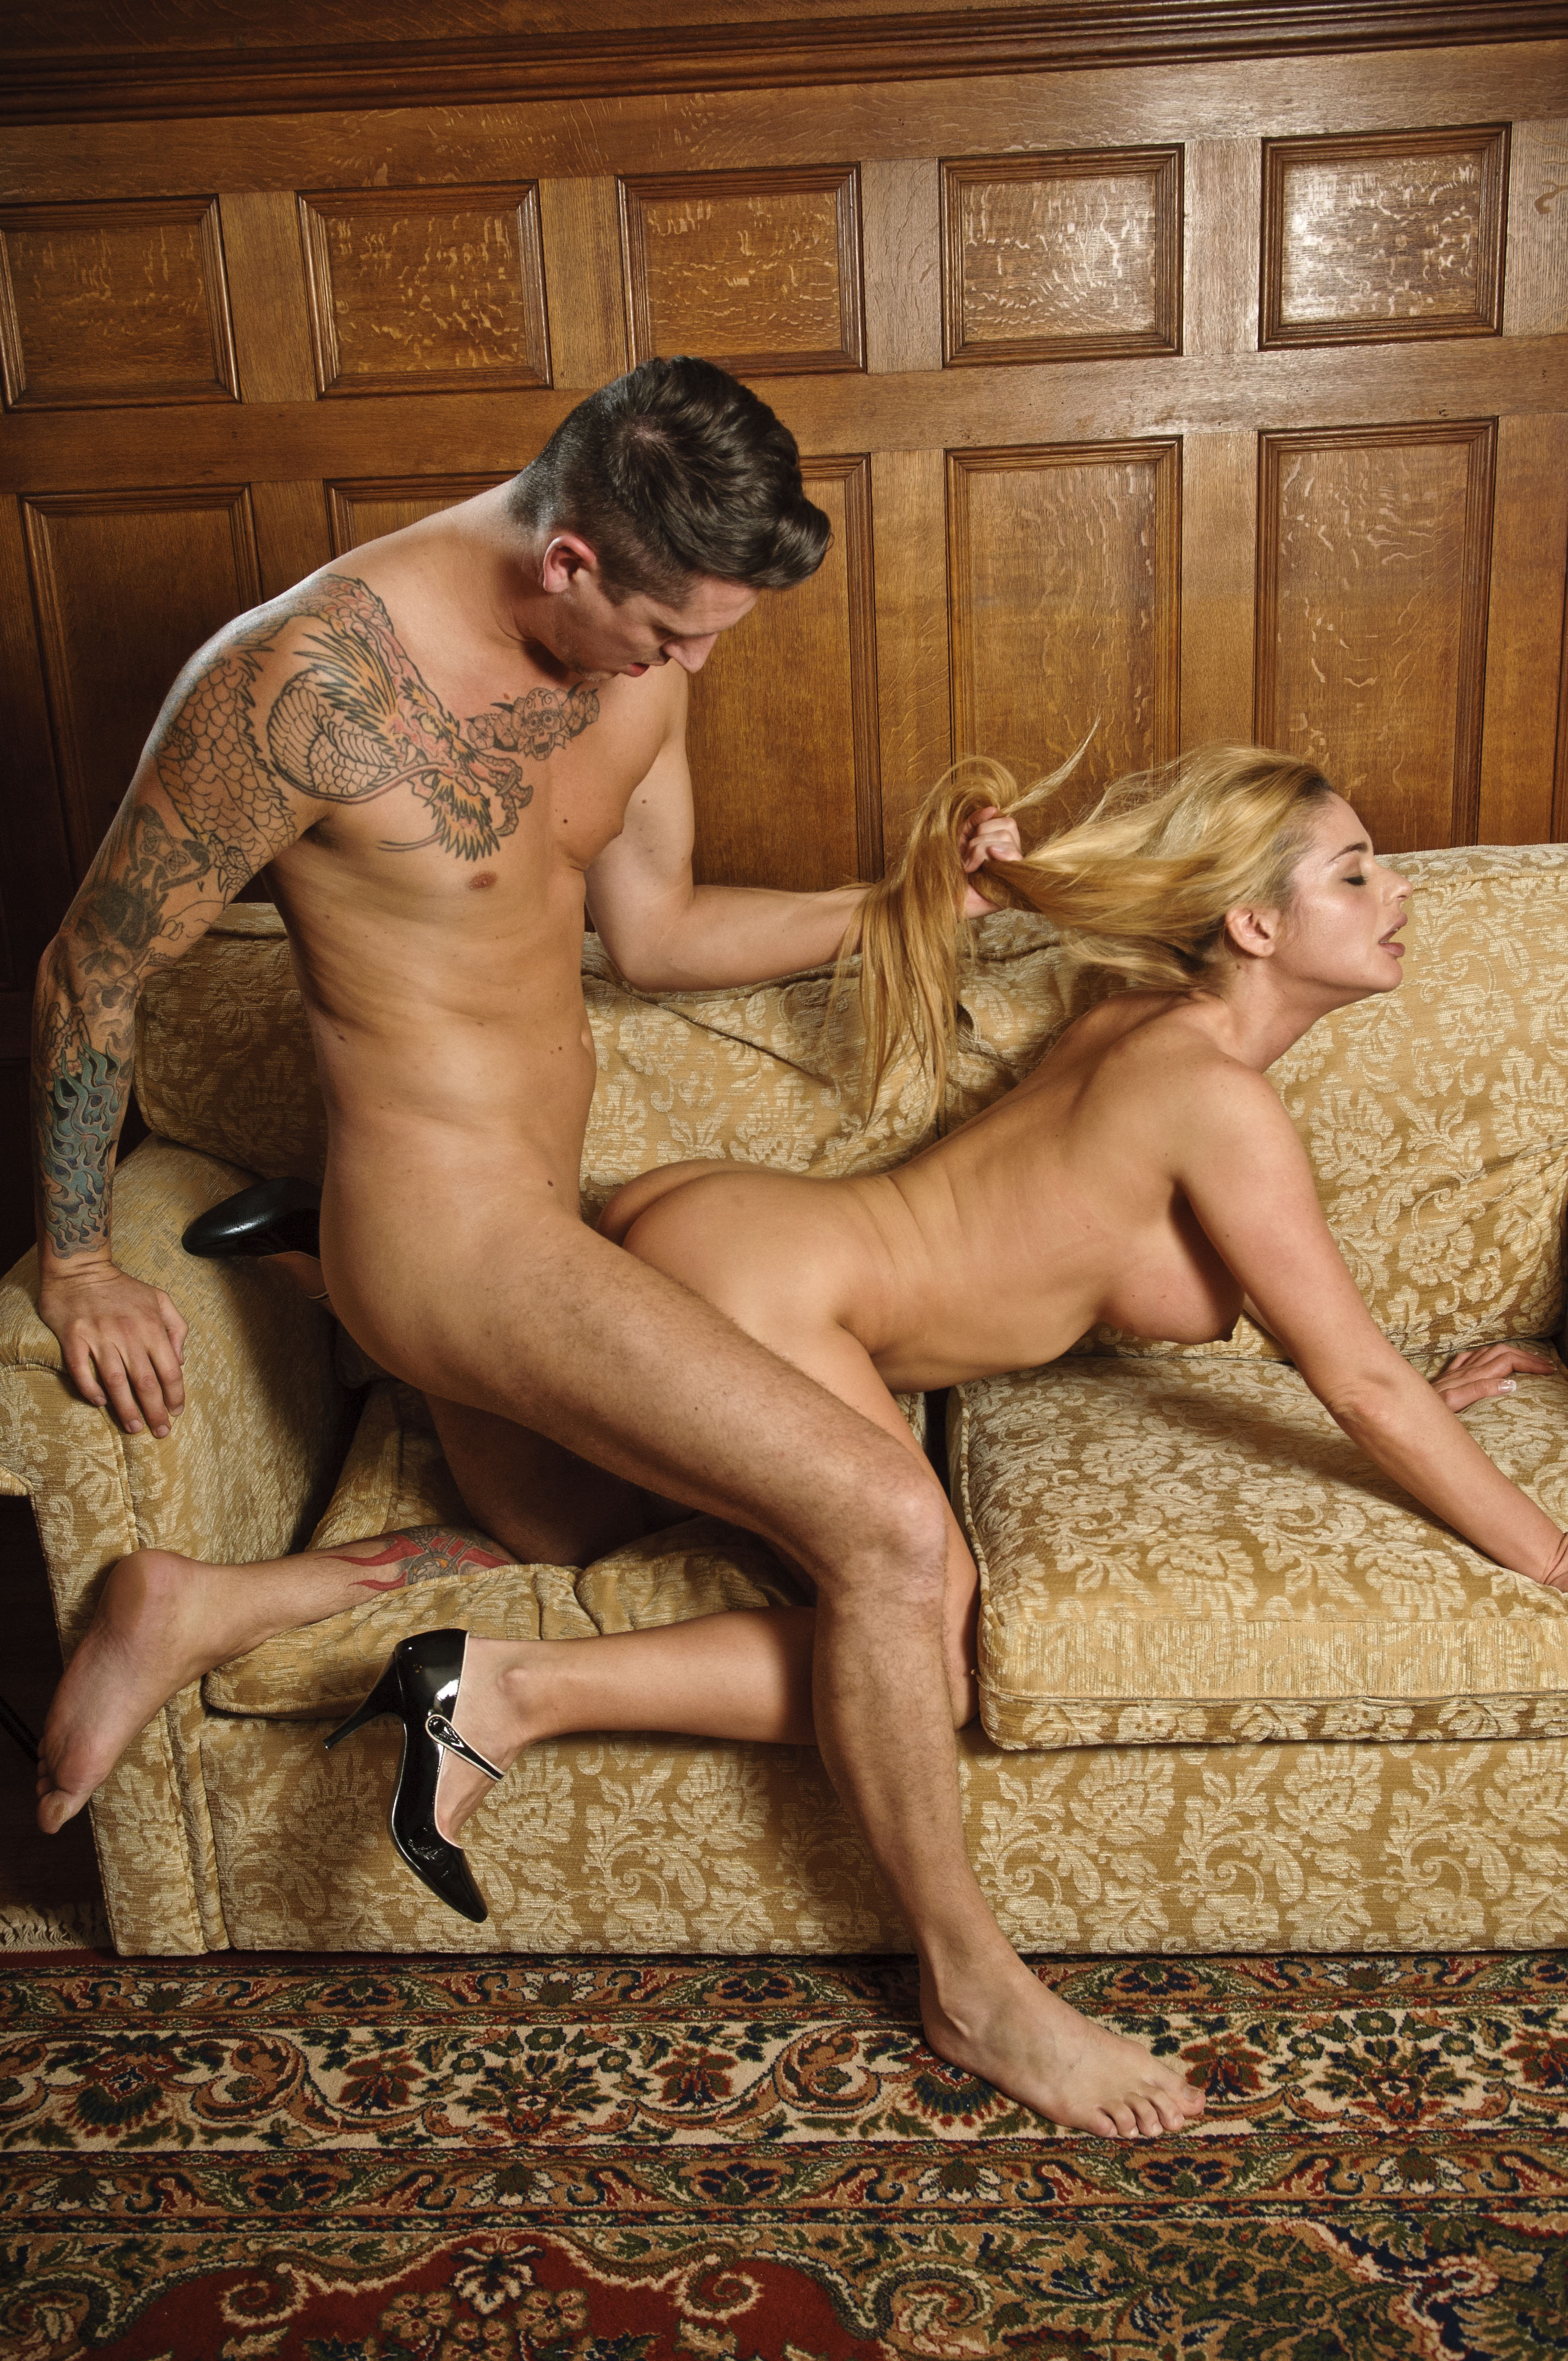 payton leigh free videos watch download and enjoy